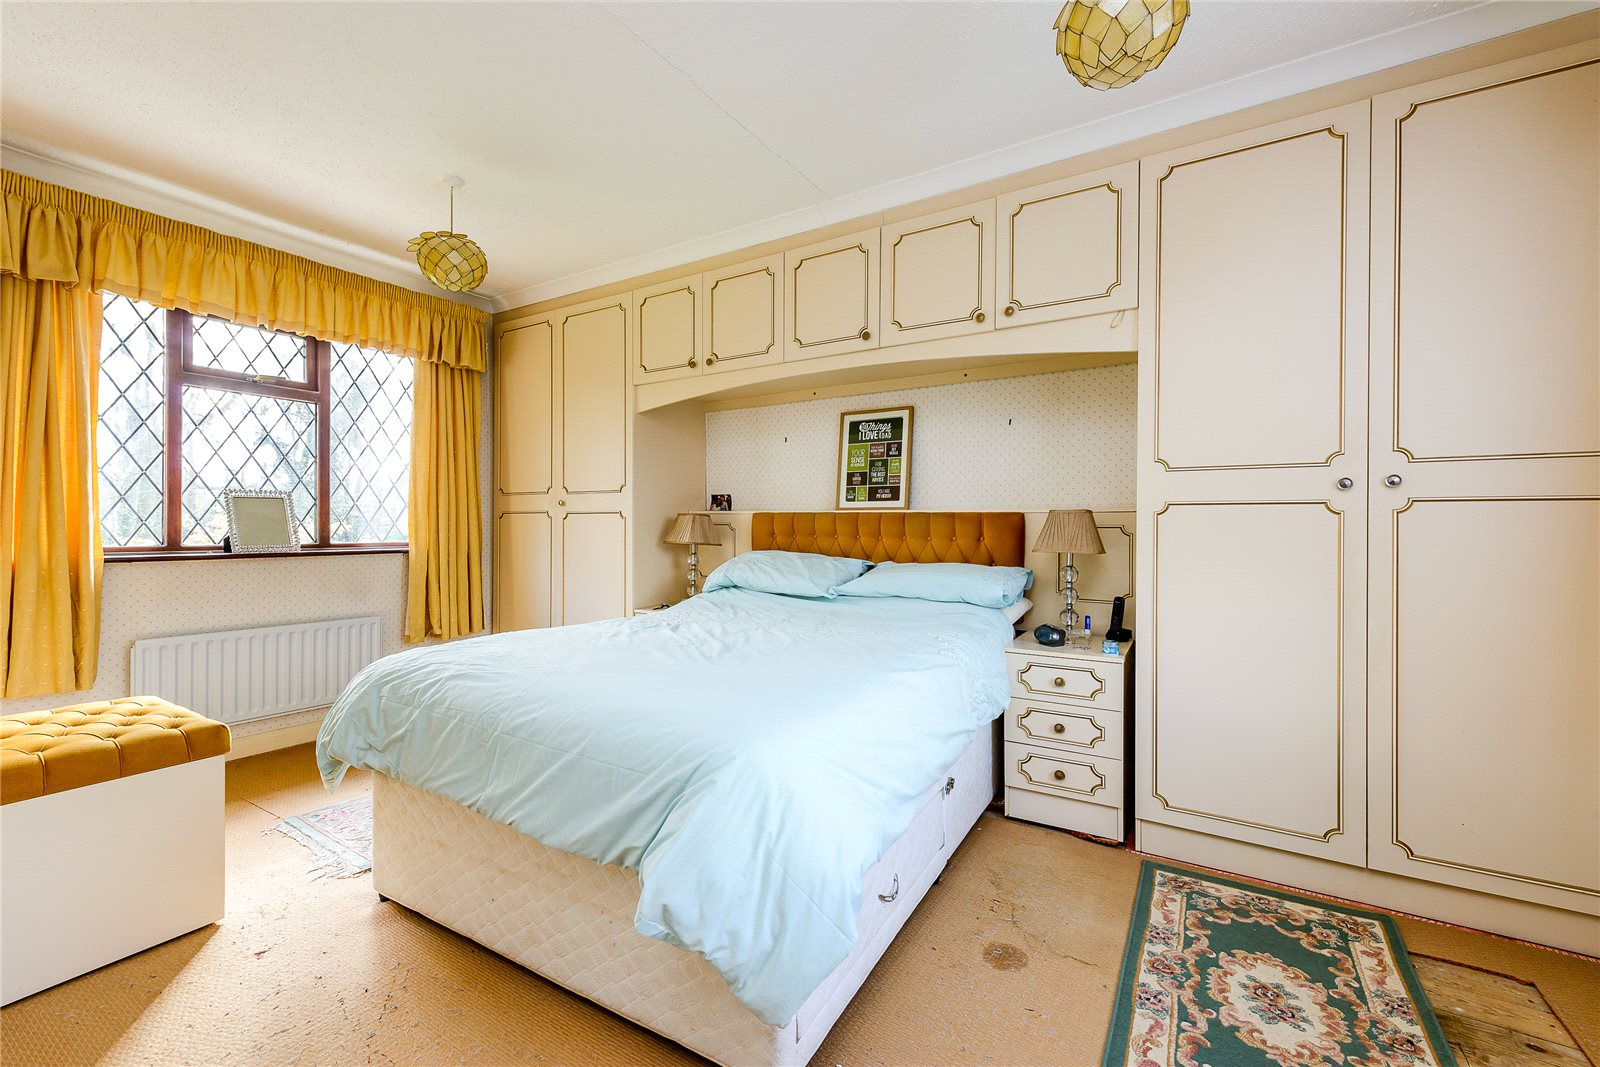 Additional photo for property listing at High Beeches, Gerrards Cross, Buckinghamshire, SL9 Gerrards Cross, Angleterre